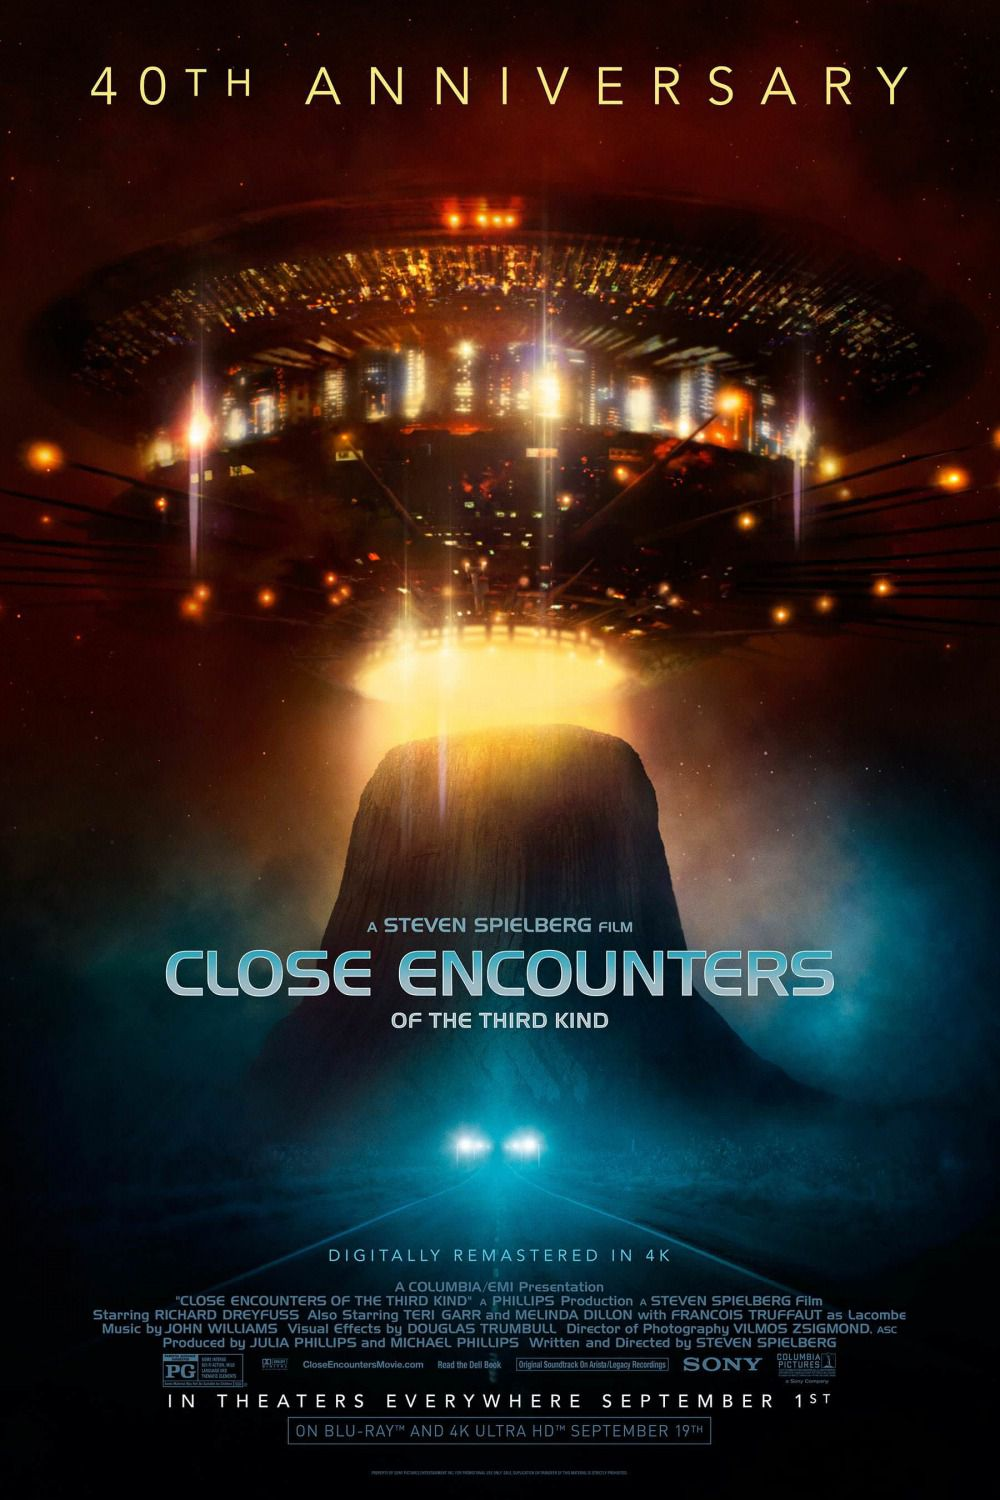 Close encounters of the third kind - Incontri ravvicinati del 3 tipo - 40th anniversary - Steven Spielberg film - Richard Dreyfuss - Teri Garr - Melinda Dillon - Francois Truffaut as Lacombe - Music by John Williams